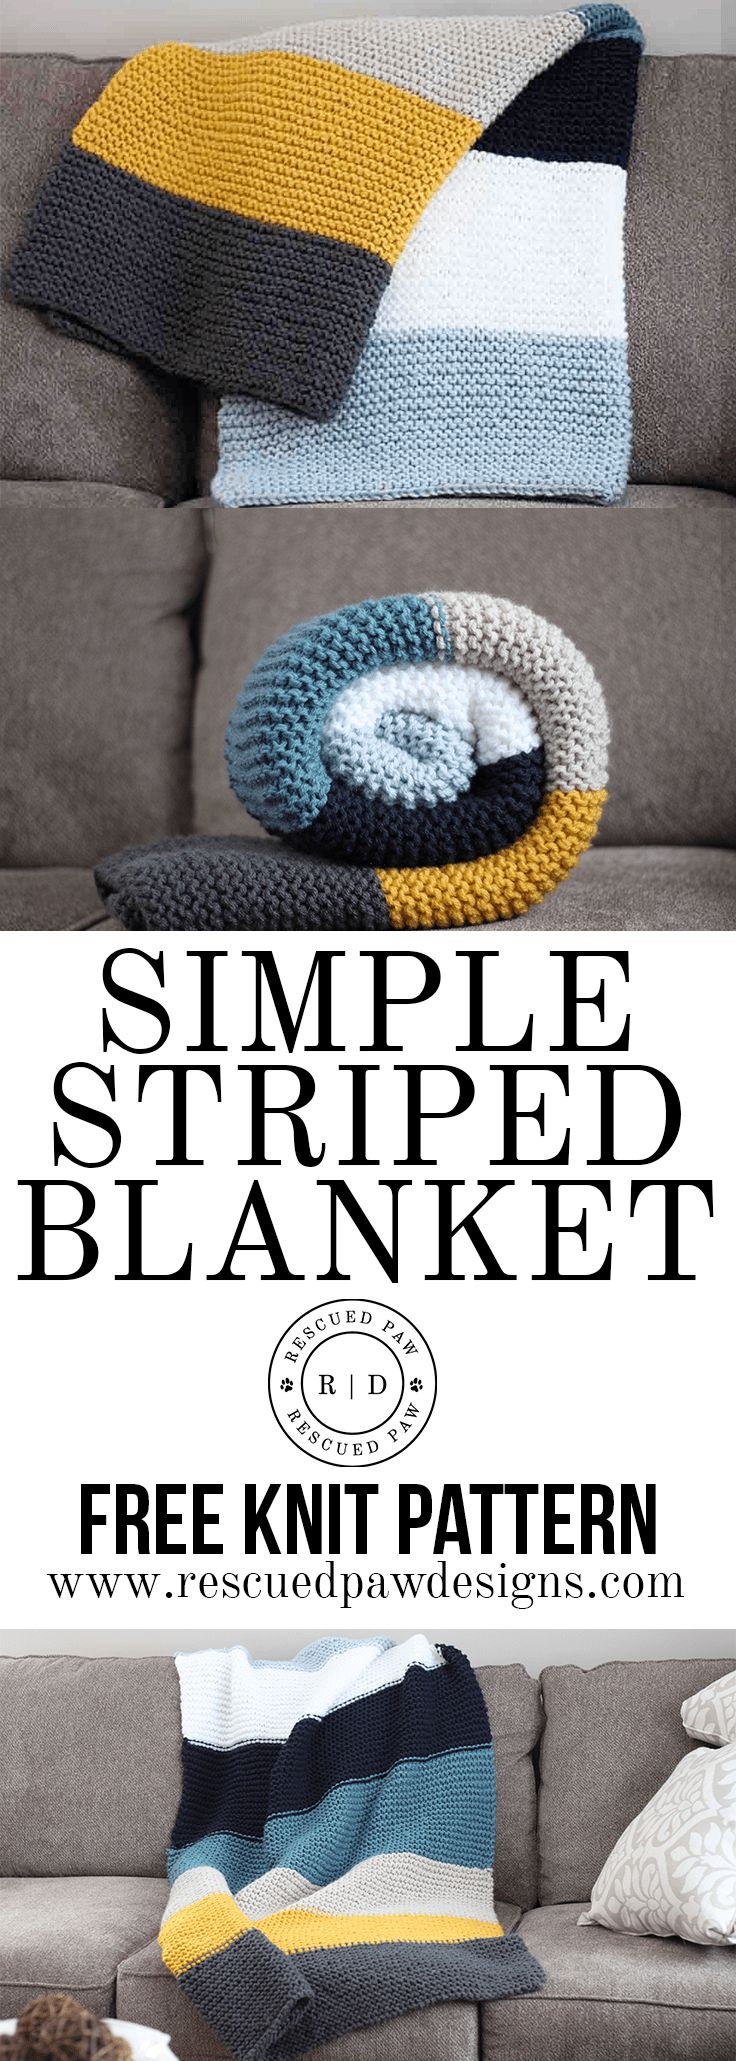 SIMPLE STRIPED KNIT BLANKET PATTERN by Rescued Paw Designs - Great for Beginners!  via @rescuedpaw